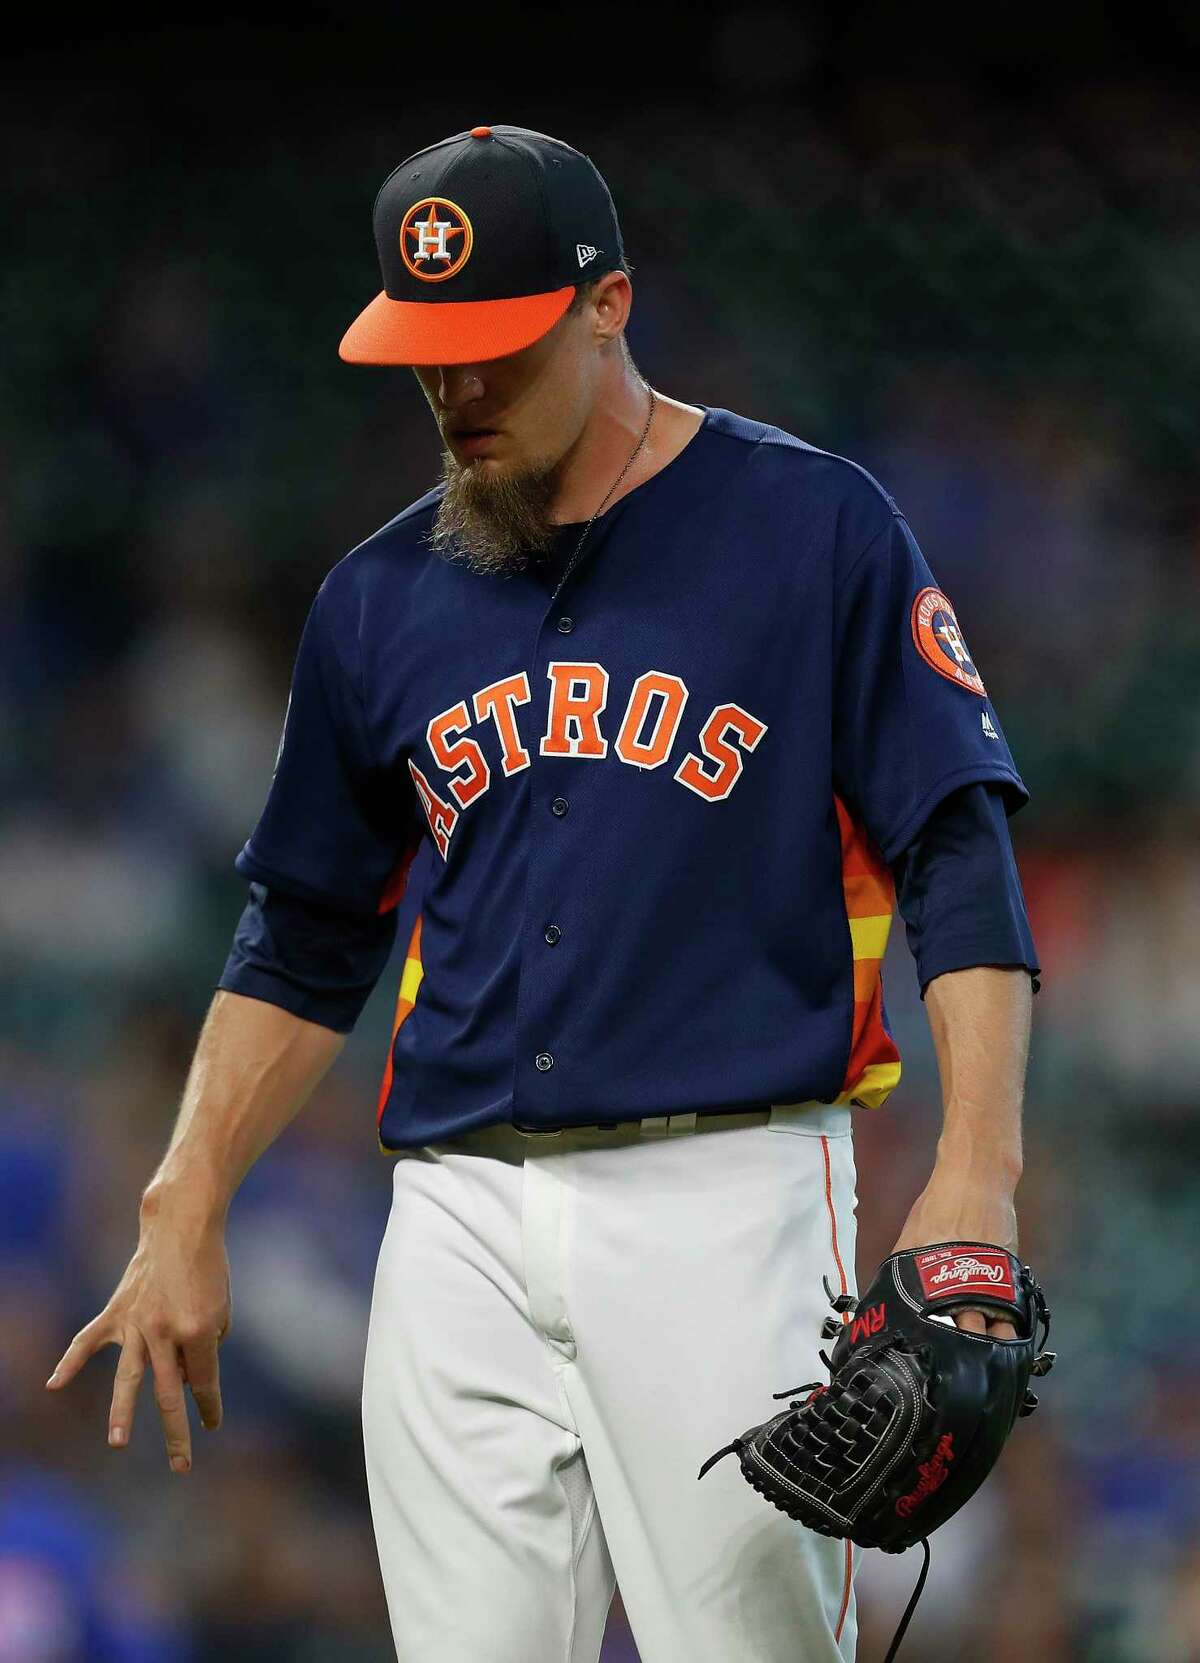 Houston Astros relief pitcher Ken Giles (53) shakes his hand as he walked back to the dugout after getting out of the during the X inning of an MLB exhibition game at Minute Maid Park, Friday, March 31, 2017, in Houston.